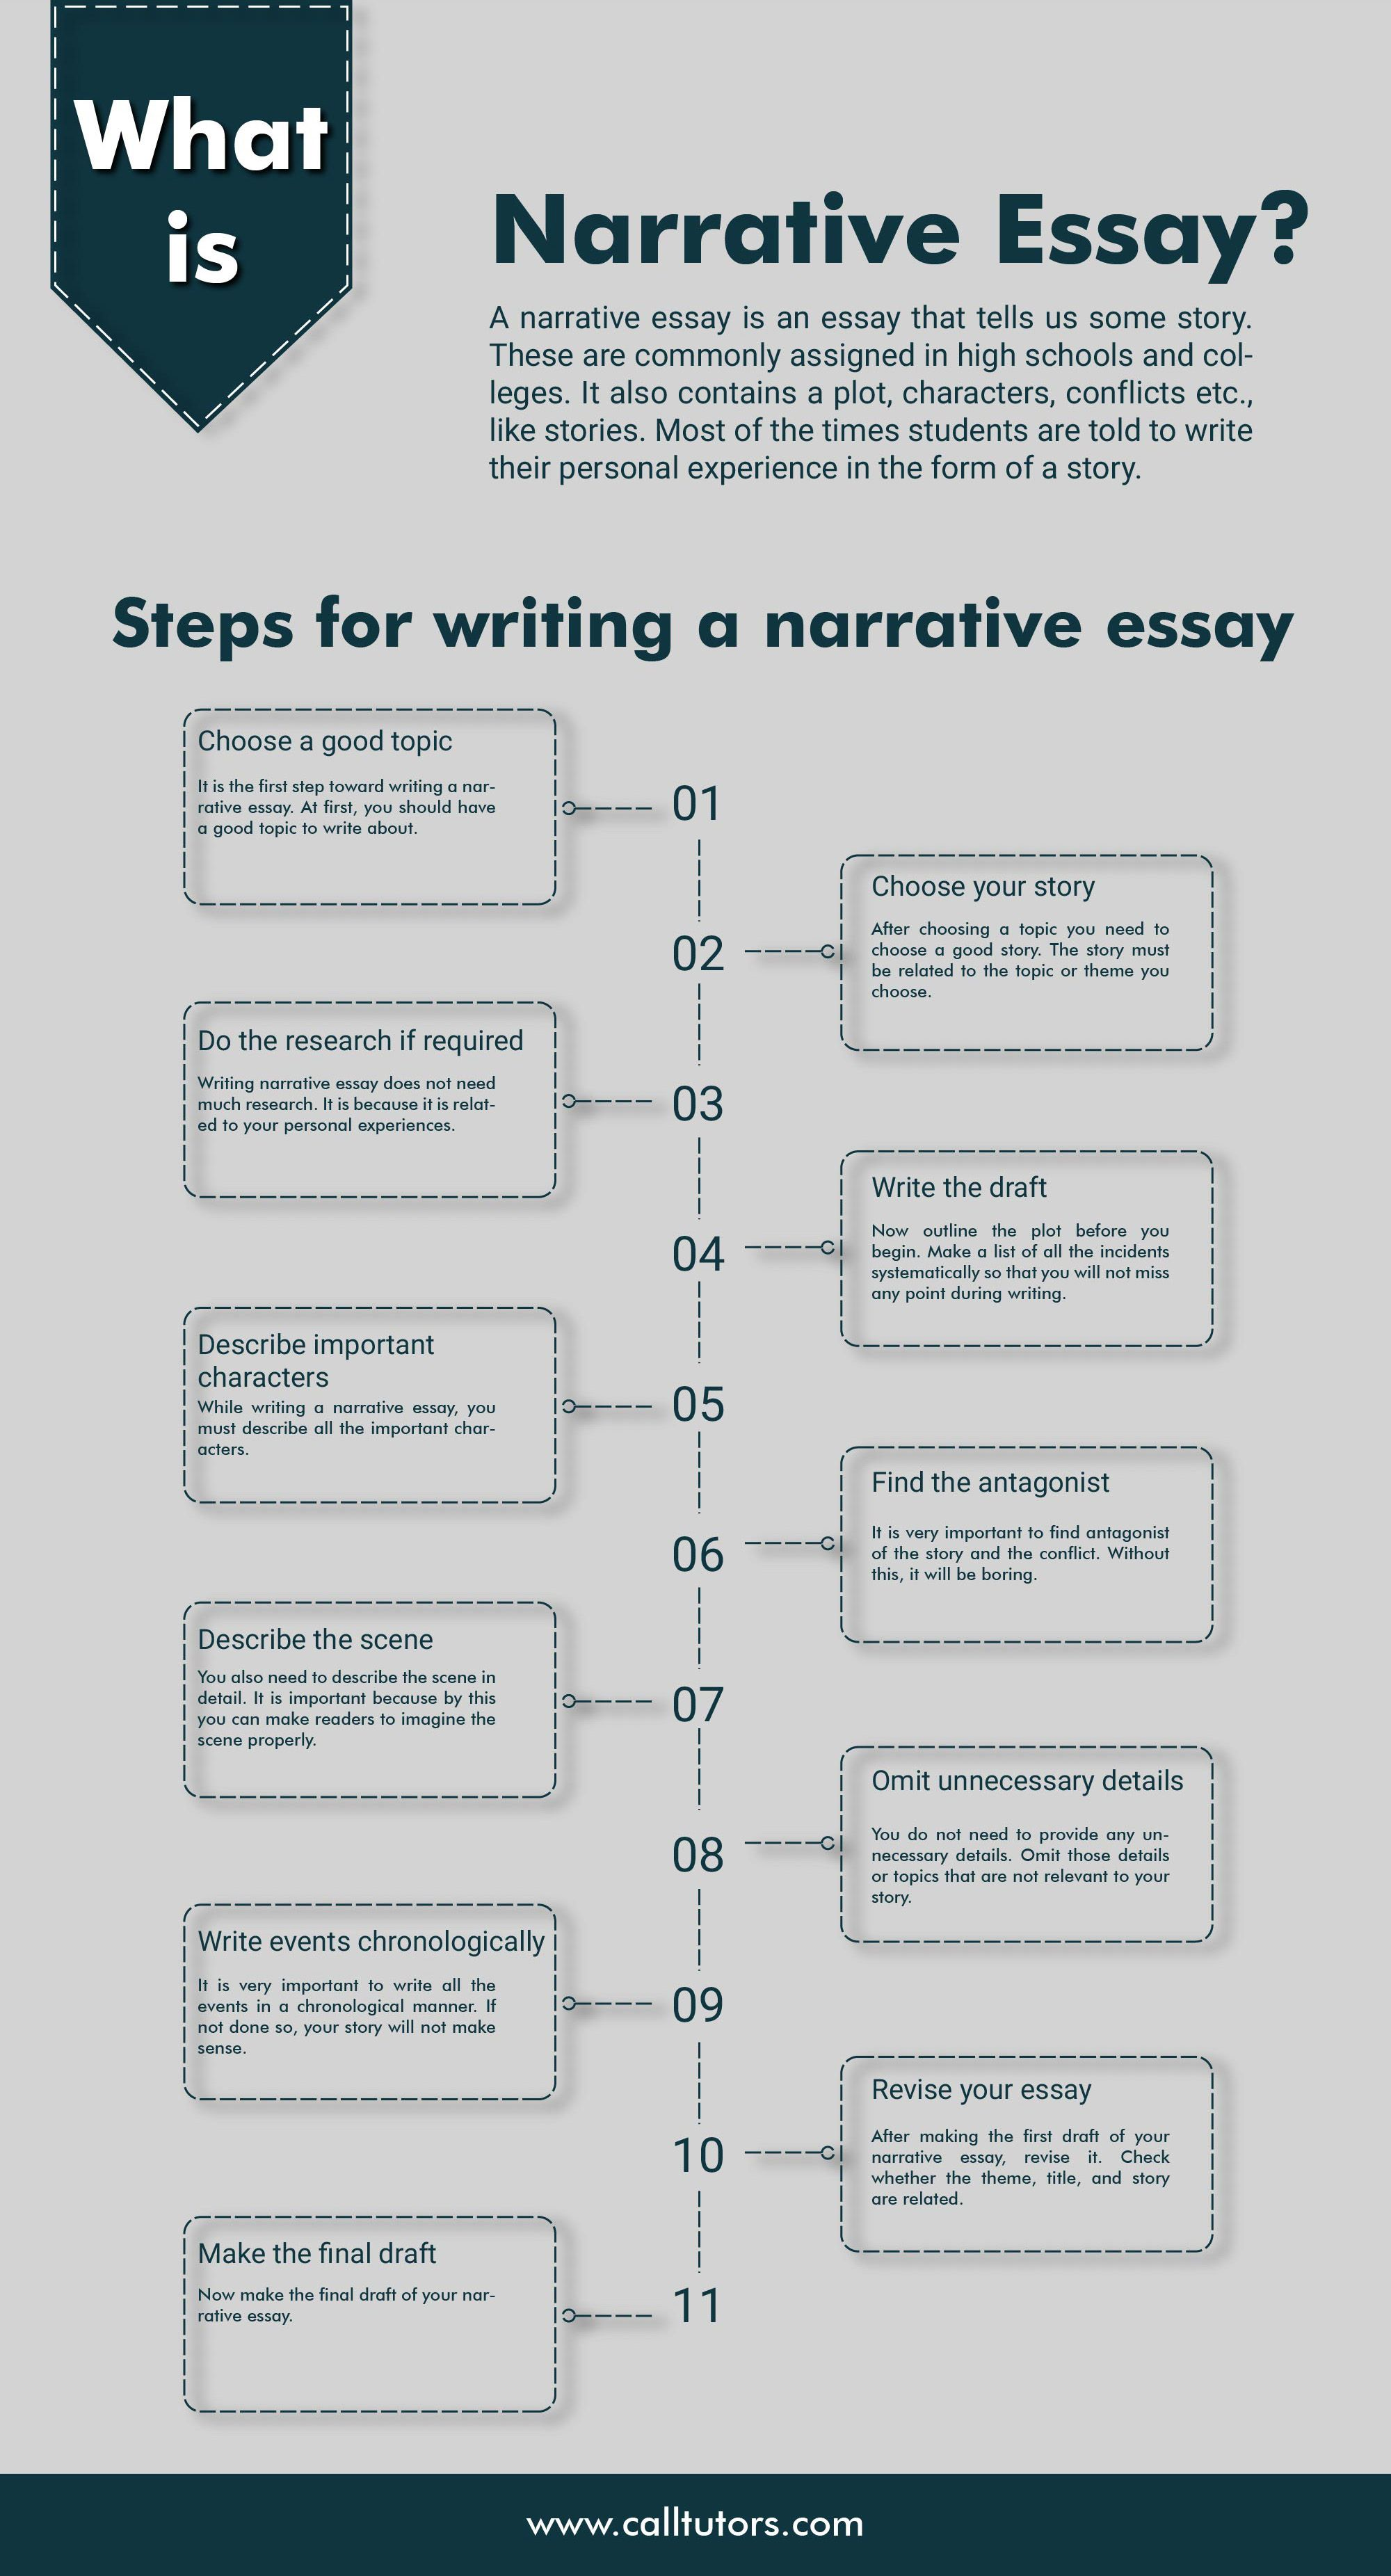 How To Write A Narrative Essay? Step by Step Complete Guide